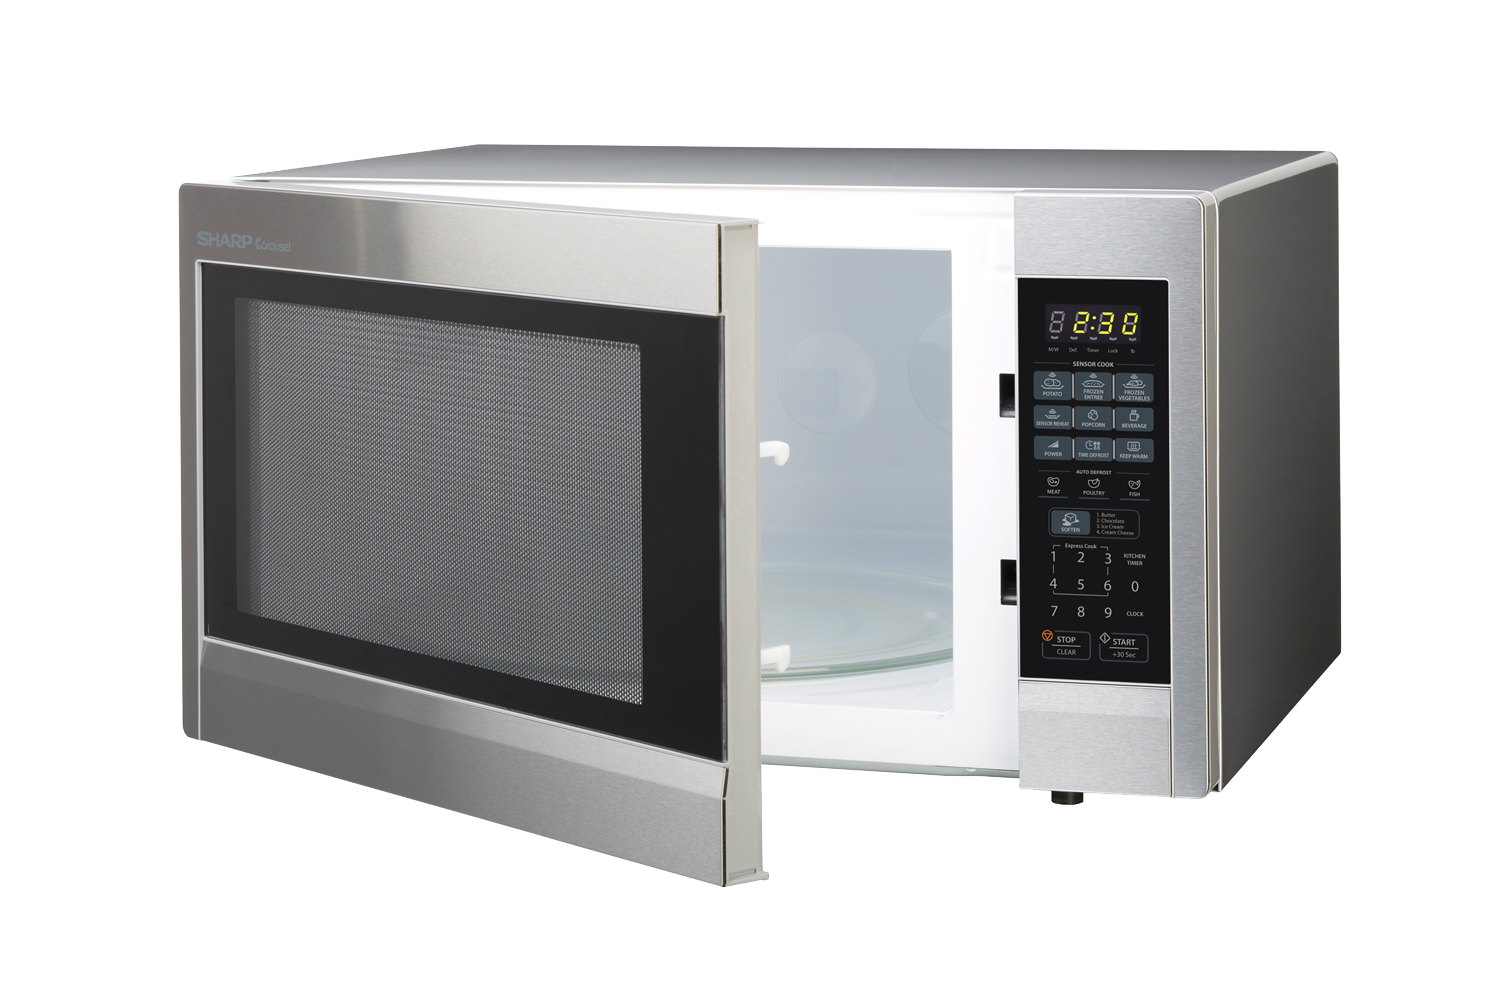 stainless steel countertop microwave r651zs u2013 left